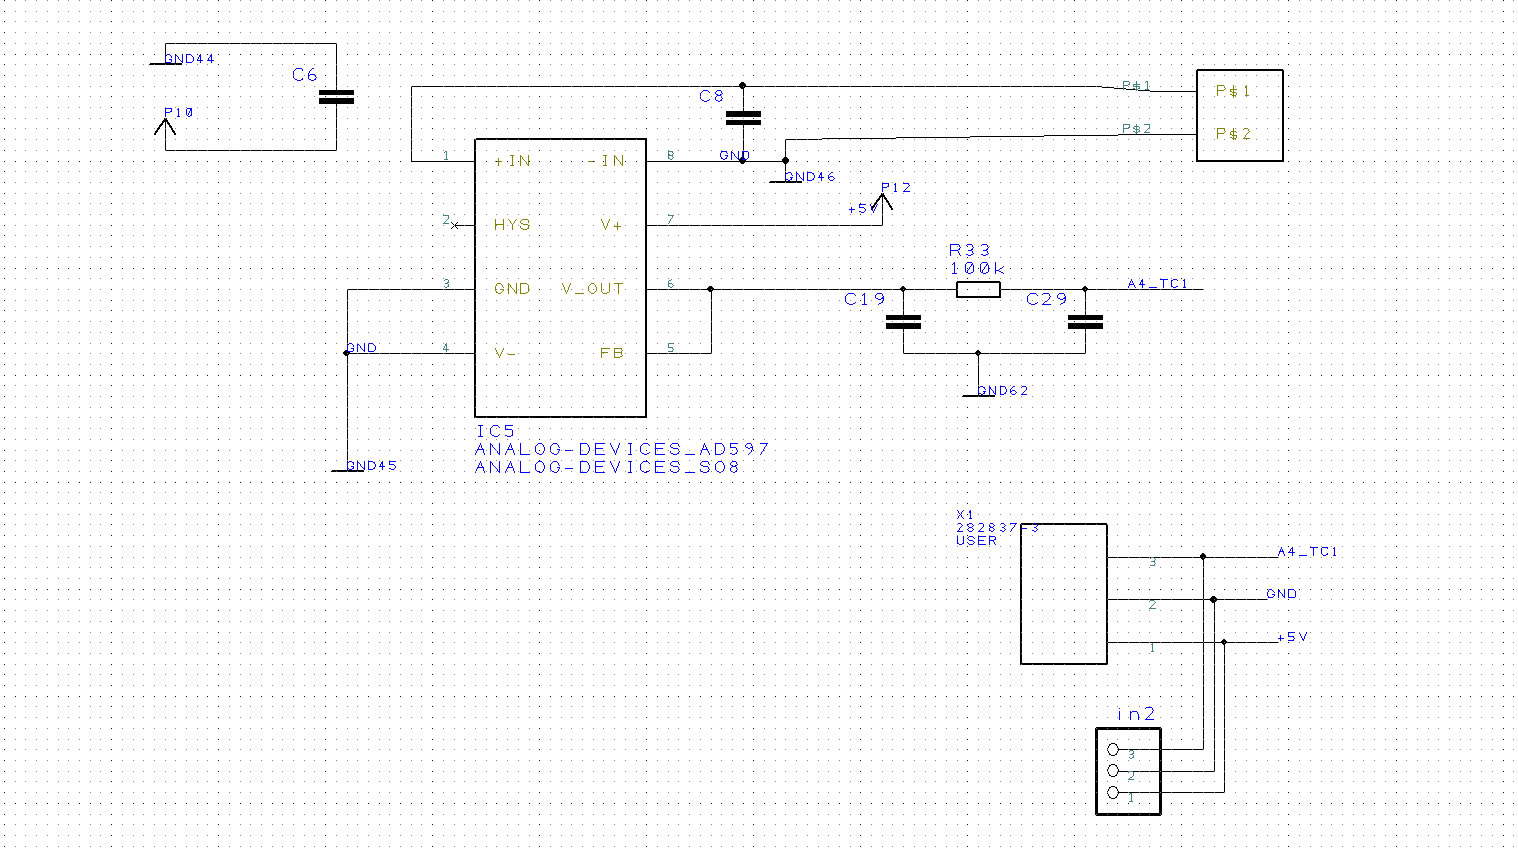 Extthermocouple 10 Reprap Wiring Diagram For Thermocouple Ad597 Adapter Schematic